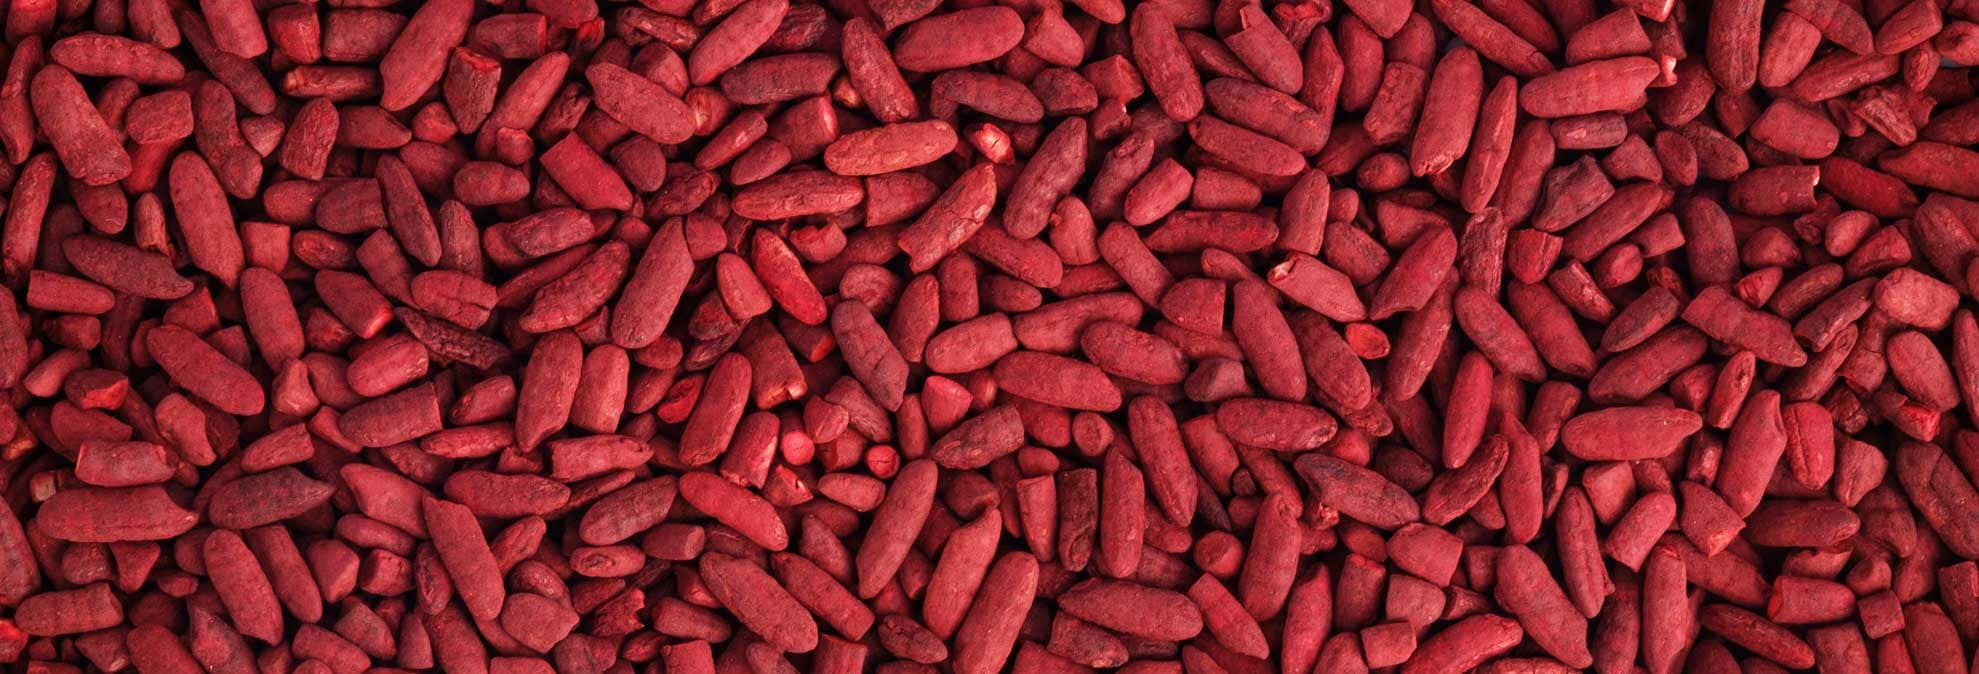 Red Yeast Rice Supplements Dangerous Surprises Consumer